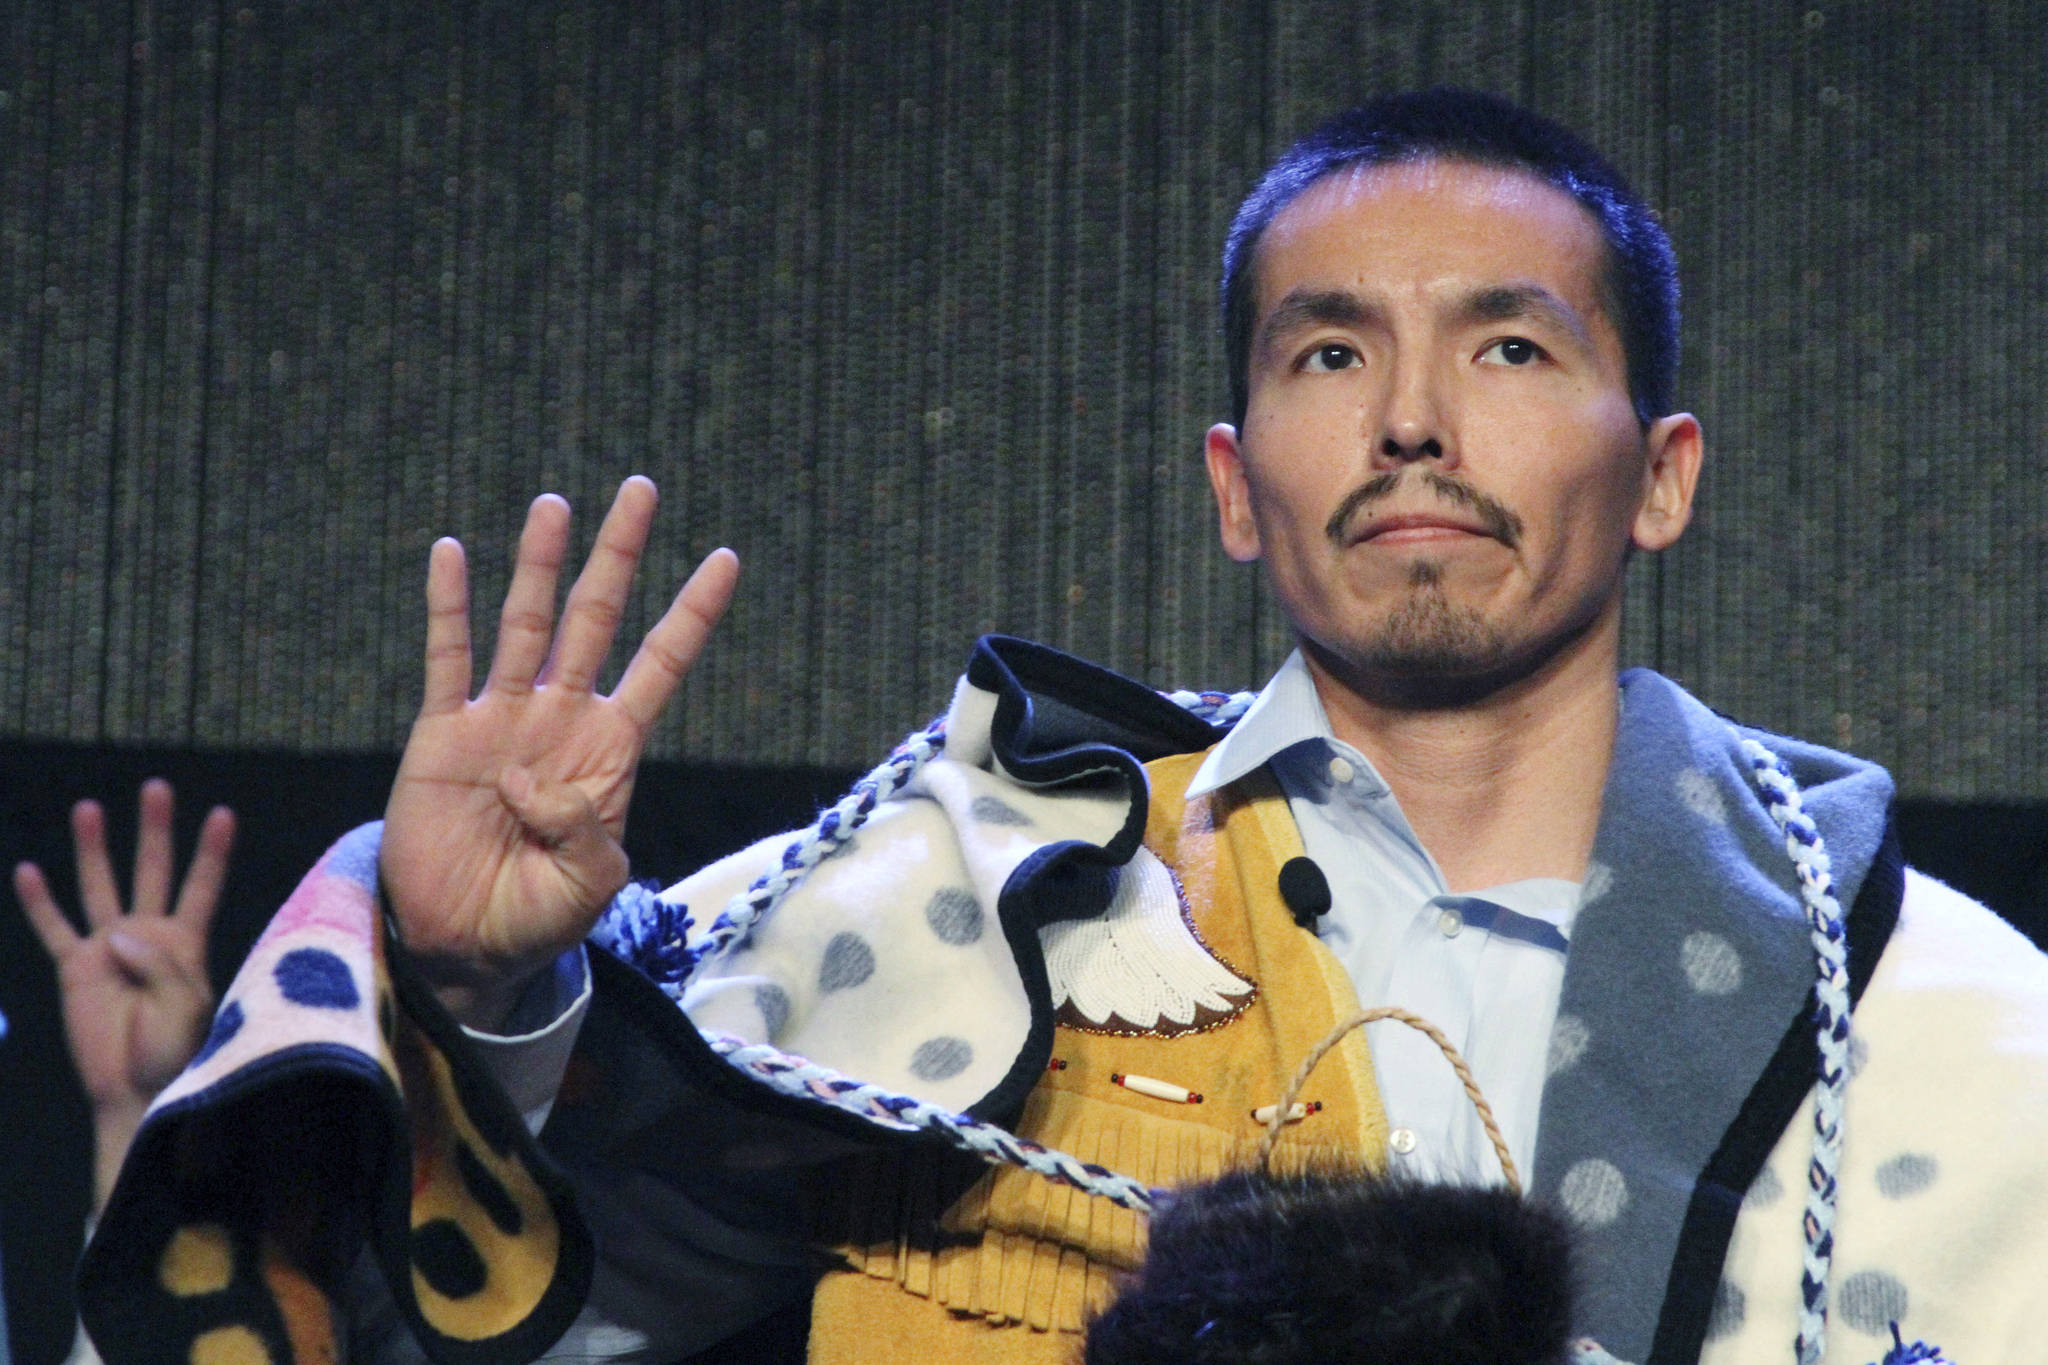 """Marvin Roberts flashes four fingers in a sign of solidarity for the so-called Fairbanks Four following his address at the Alaska Federation of Natives conference in Anchorage in this 2017 photo. Roberts and three other men were convicted of killing a Fairbanks teenager in 1997. Four men who say they were illegally imprisoned for nearly two decades for the murder of a teenager in Alaska will have their lawsuit go forward after the U.S. Supreme Court declined to get involved in the case. The high court turned away the case Monday. As is typical, the justices did not comment in rejecting the case. That leaves in place a decision by the 9th U.S. Circuit Court of Appeals. In January of last year it overturned a lower court ruling that had dismissed a lawsuit by the """"Fairbanks Four"""" against the city of Fairbanks. (AP Photo / Mark Thiessen)"""